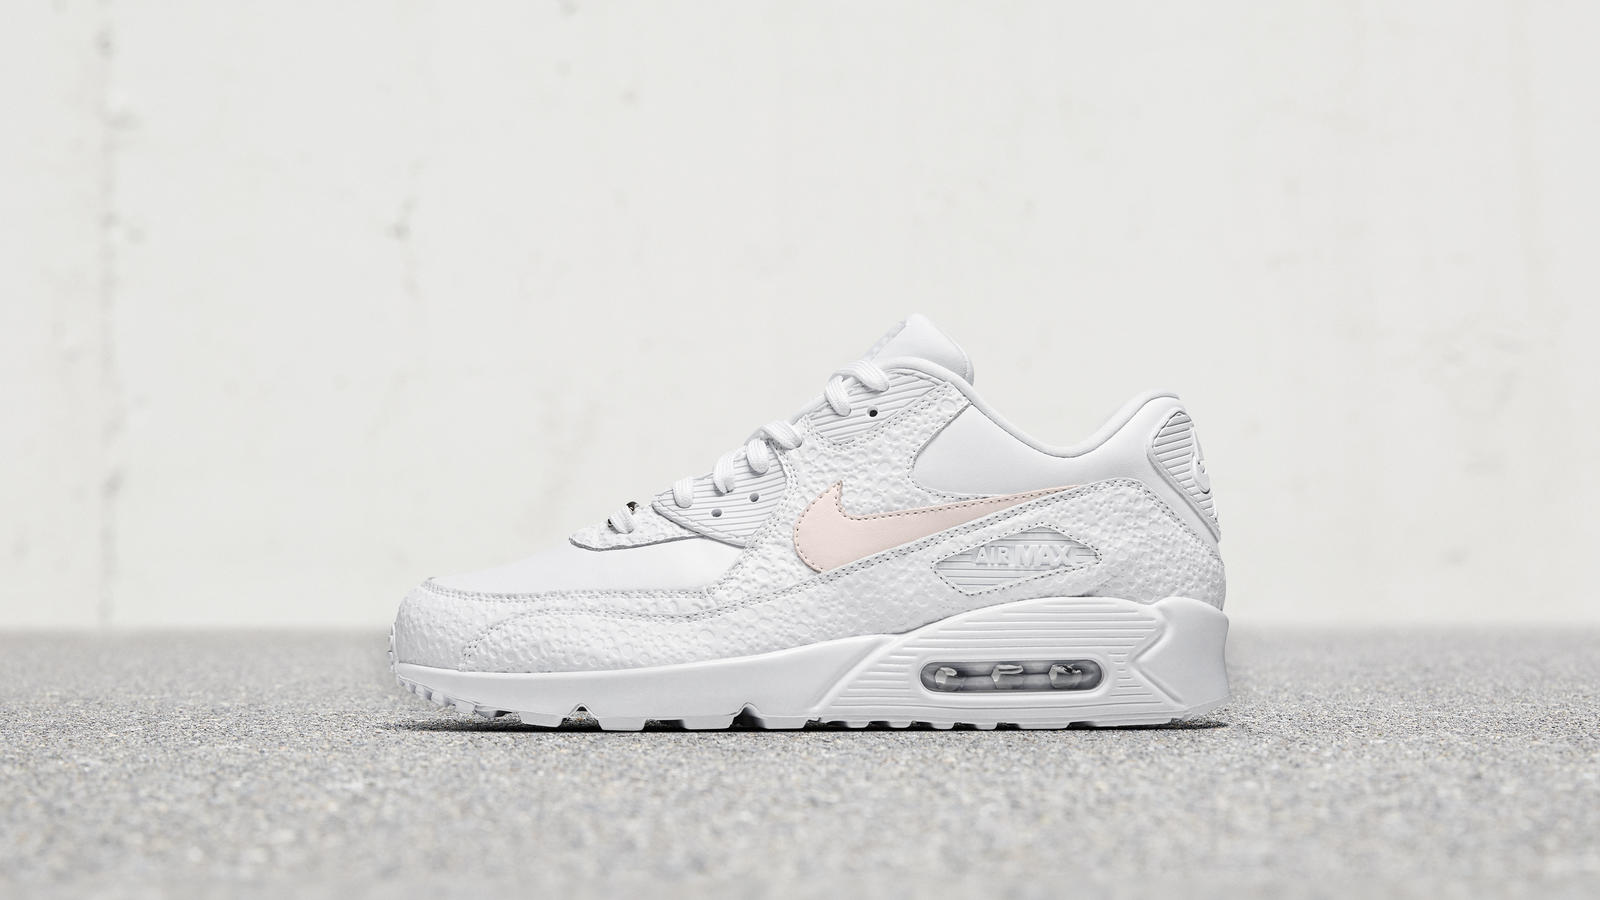 reputable site 56e61 e90a6 Nike Flyleather Air Max 90 SE 1